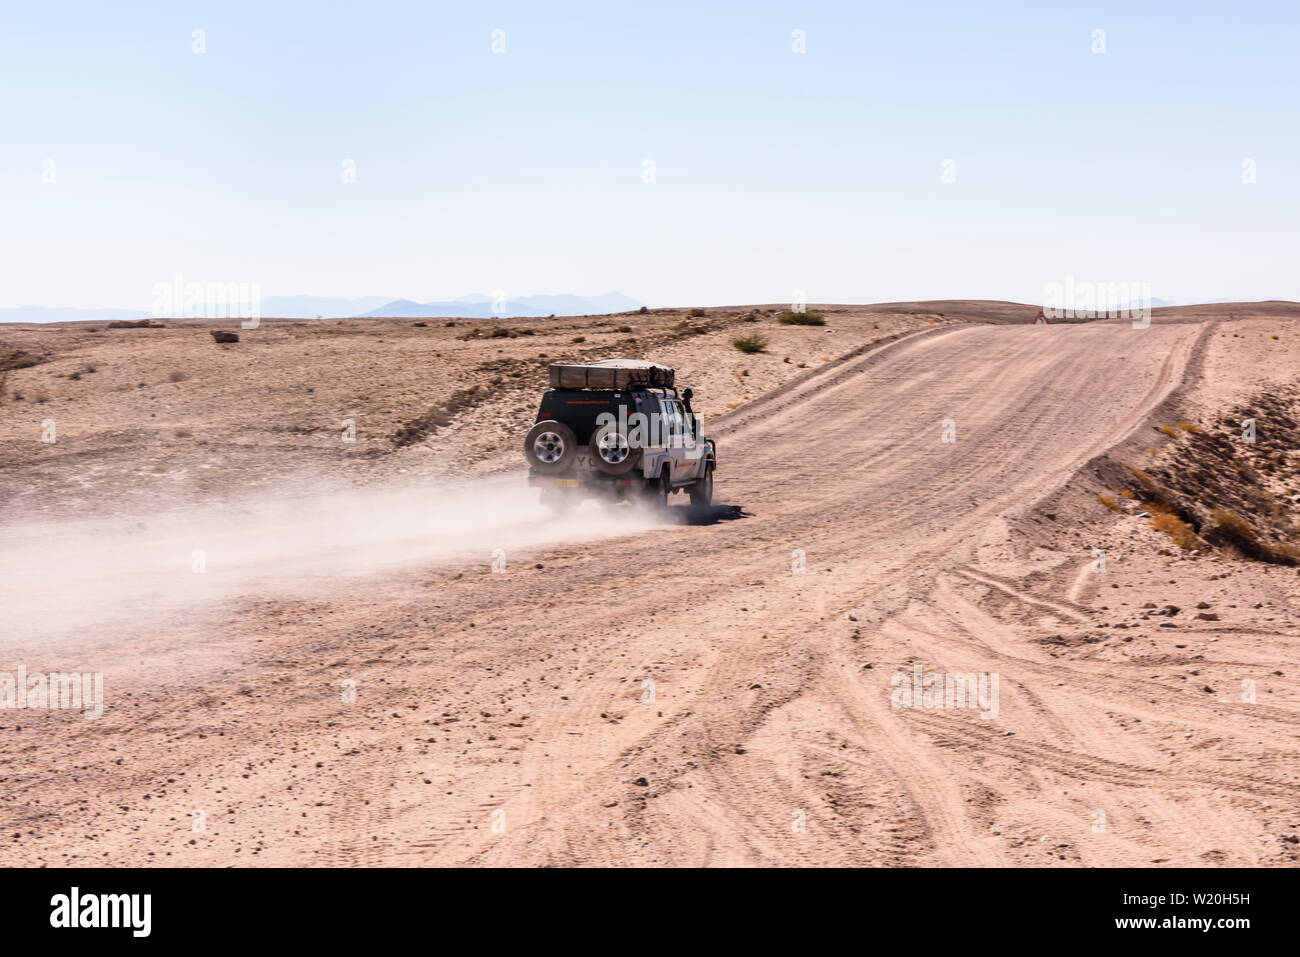 Toyota Hilux drives along a gravel dirt road leaving a dust trail in Central Namibia Stock Photo